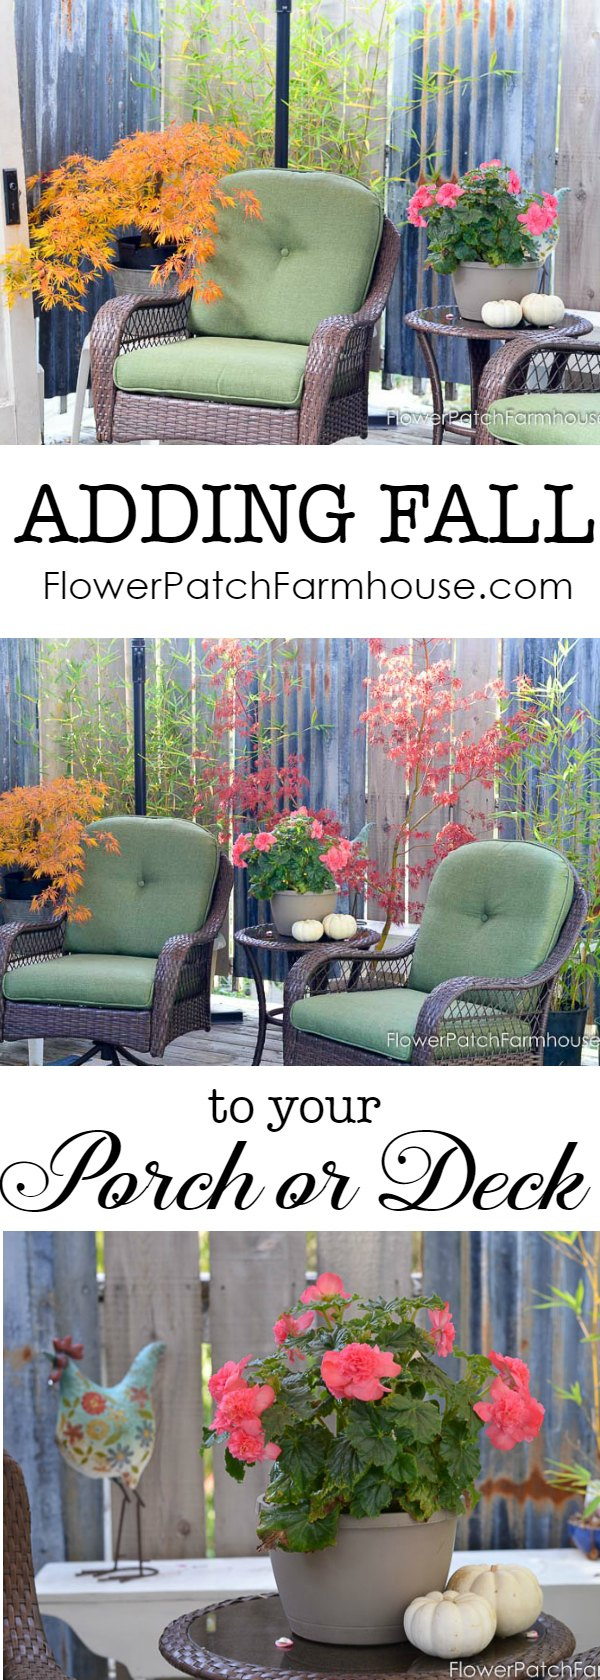 Add Fall to your #porch or deck easily.  See how this deck went from Summer to #Fall in a few moments.  All for under $6.  Easy #FallDecor, budget friendly, low stress but all the beauty!